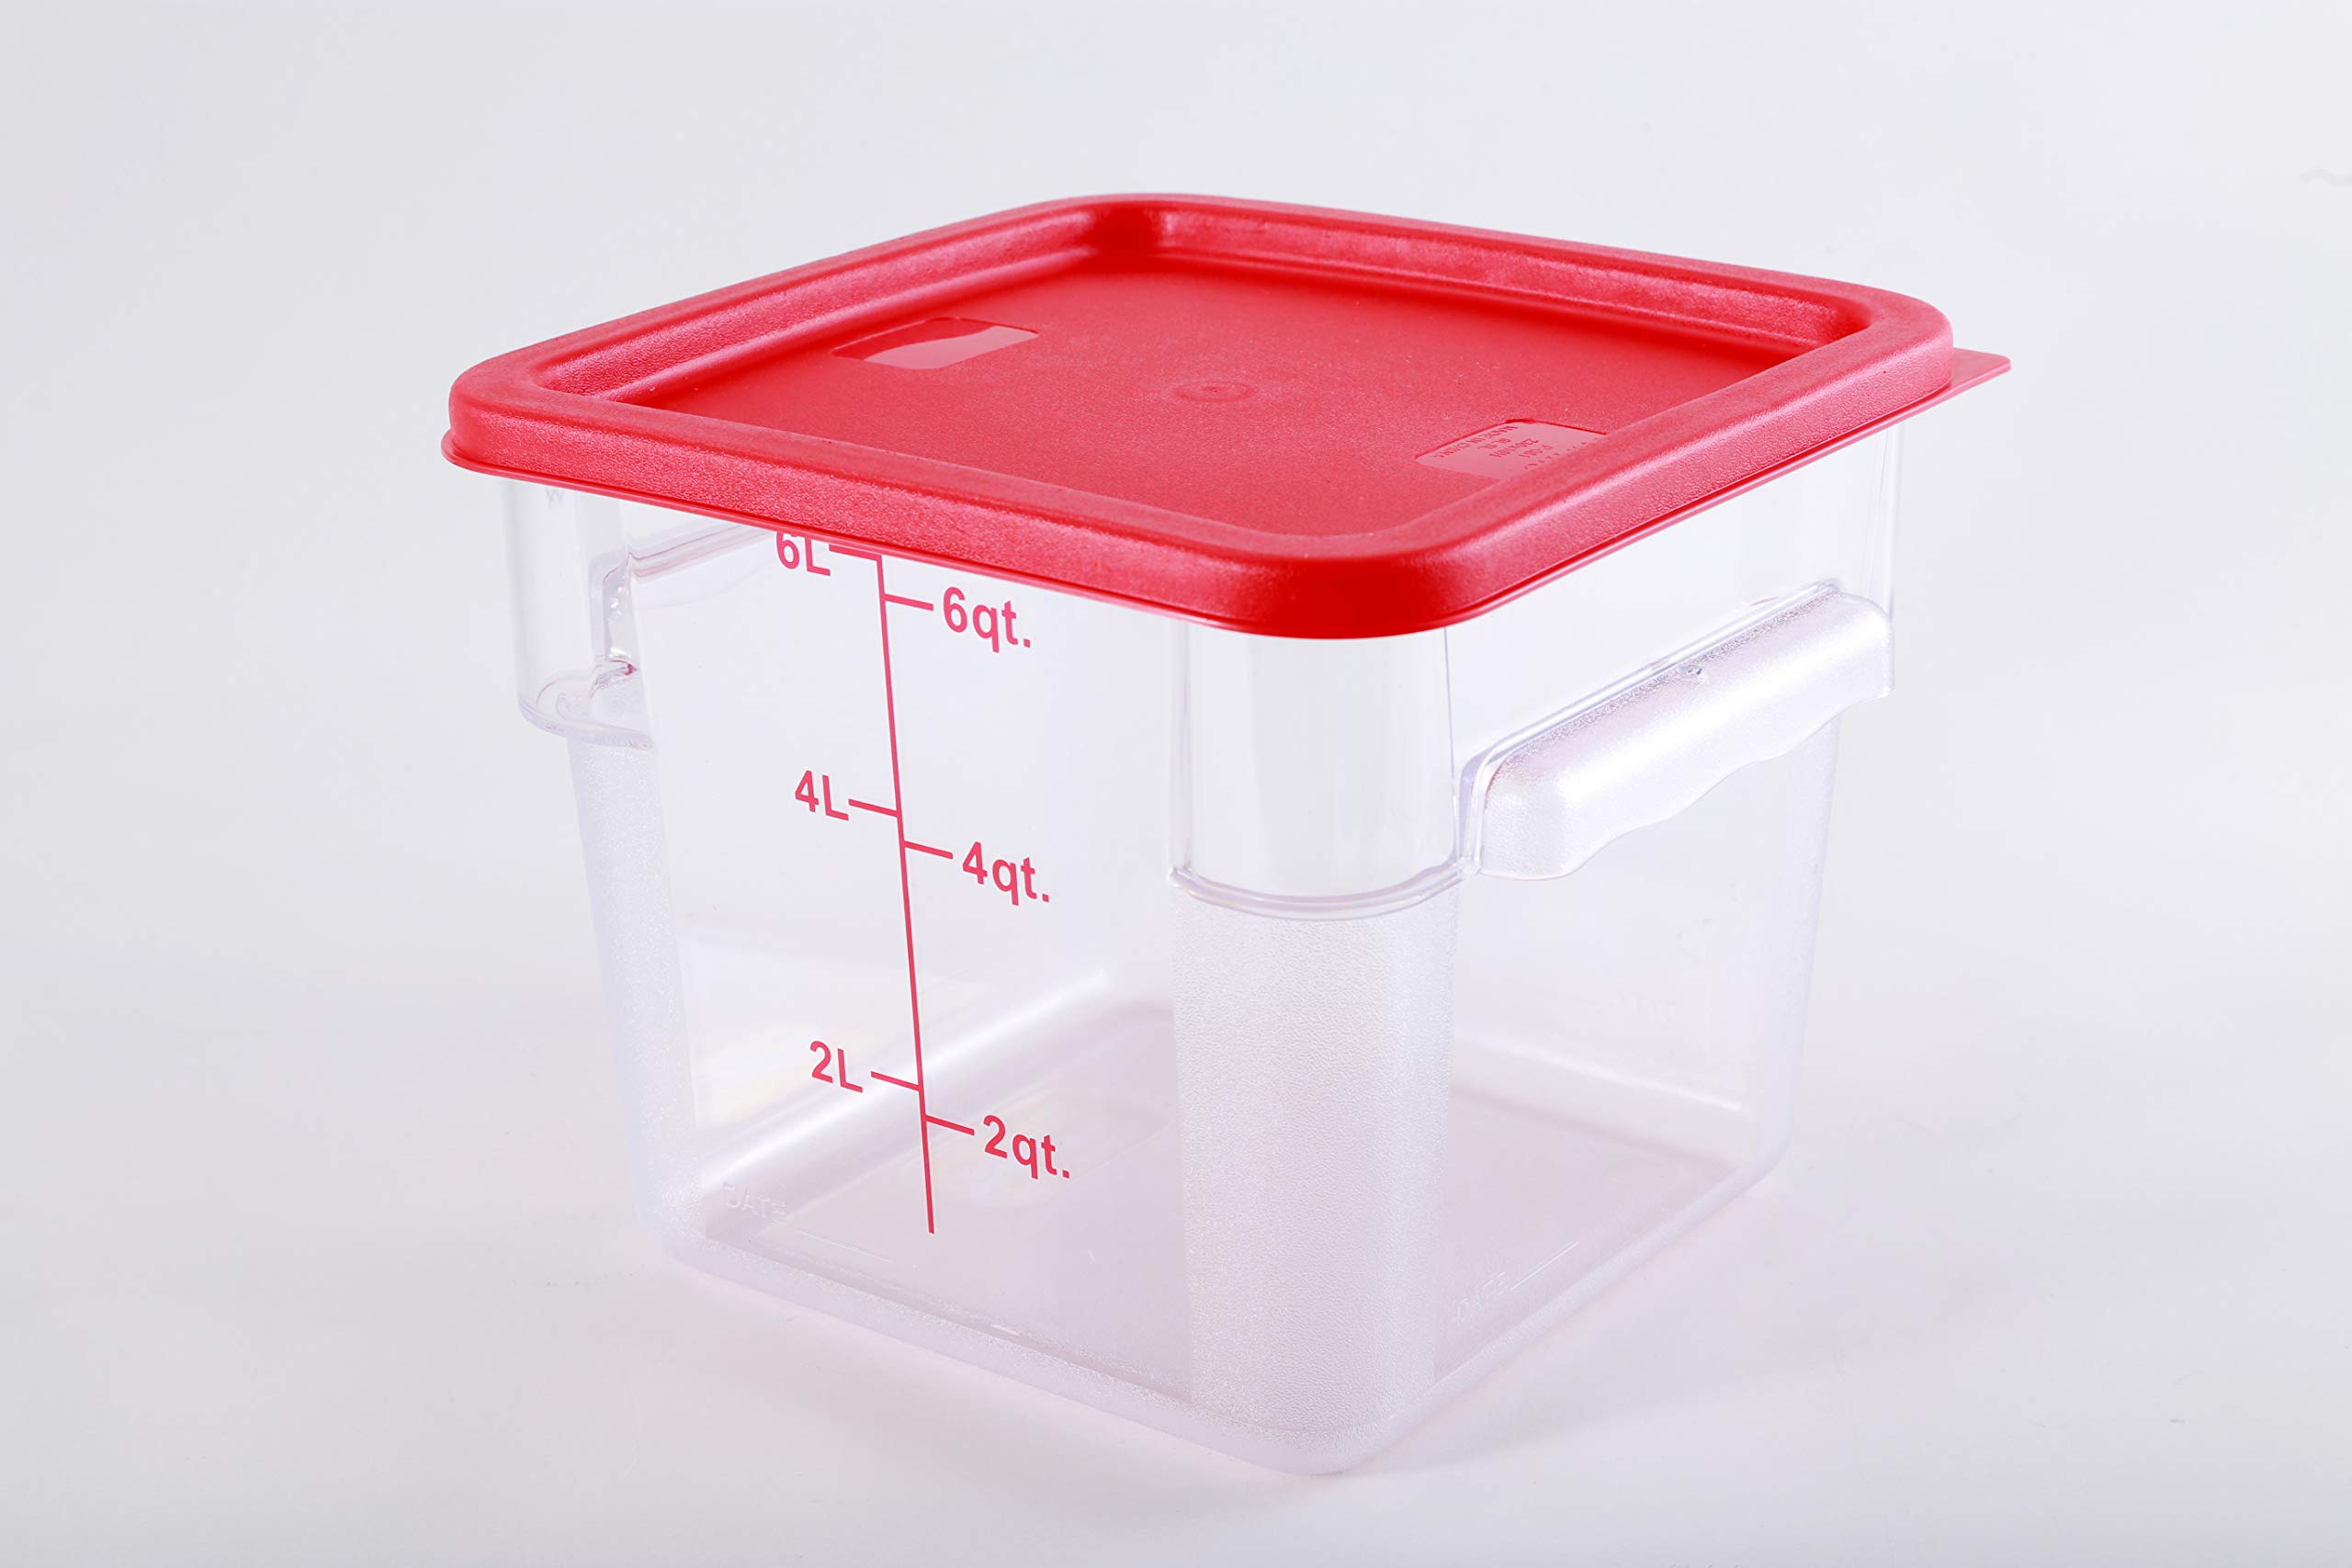 Hakka 6 Qt Commercial Grade Square Food Storage Containers with Lids,Polycarbonate,Clear - Case of 5 by HAKKA FOOD PROCESSING (Image #5)